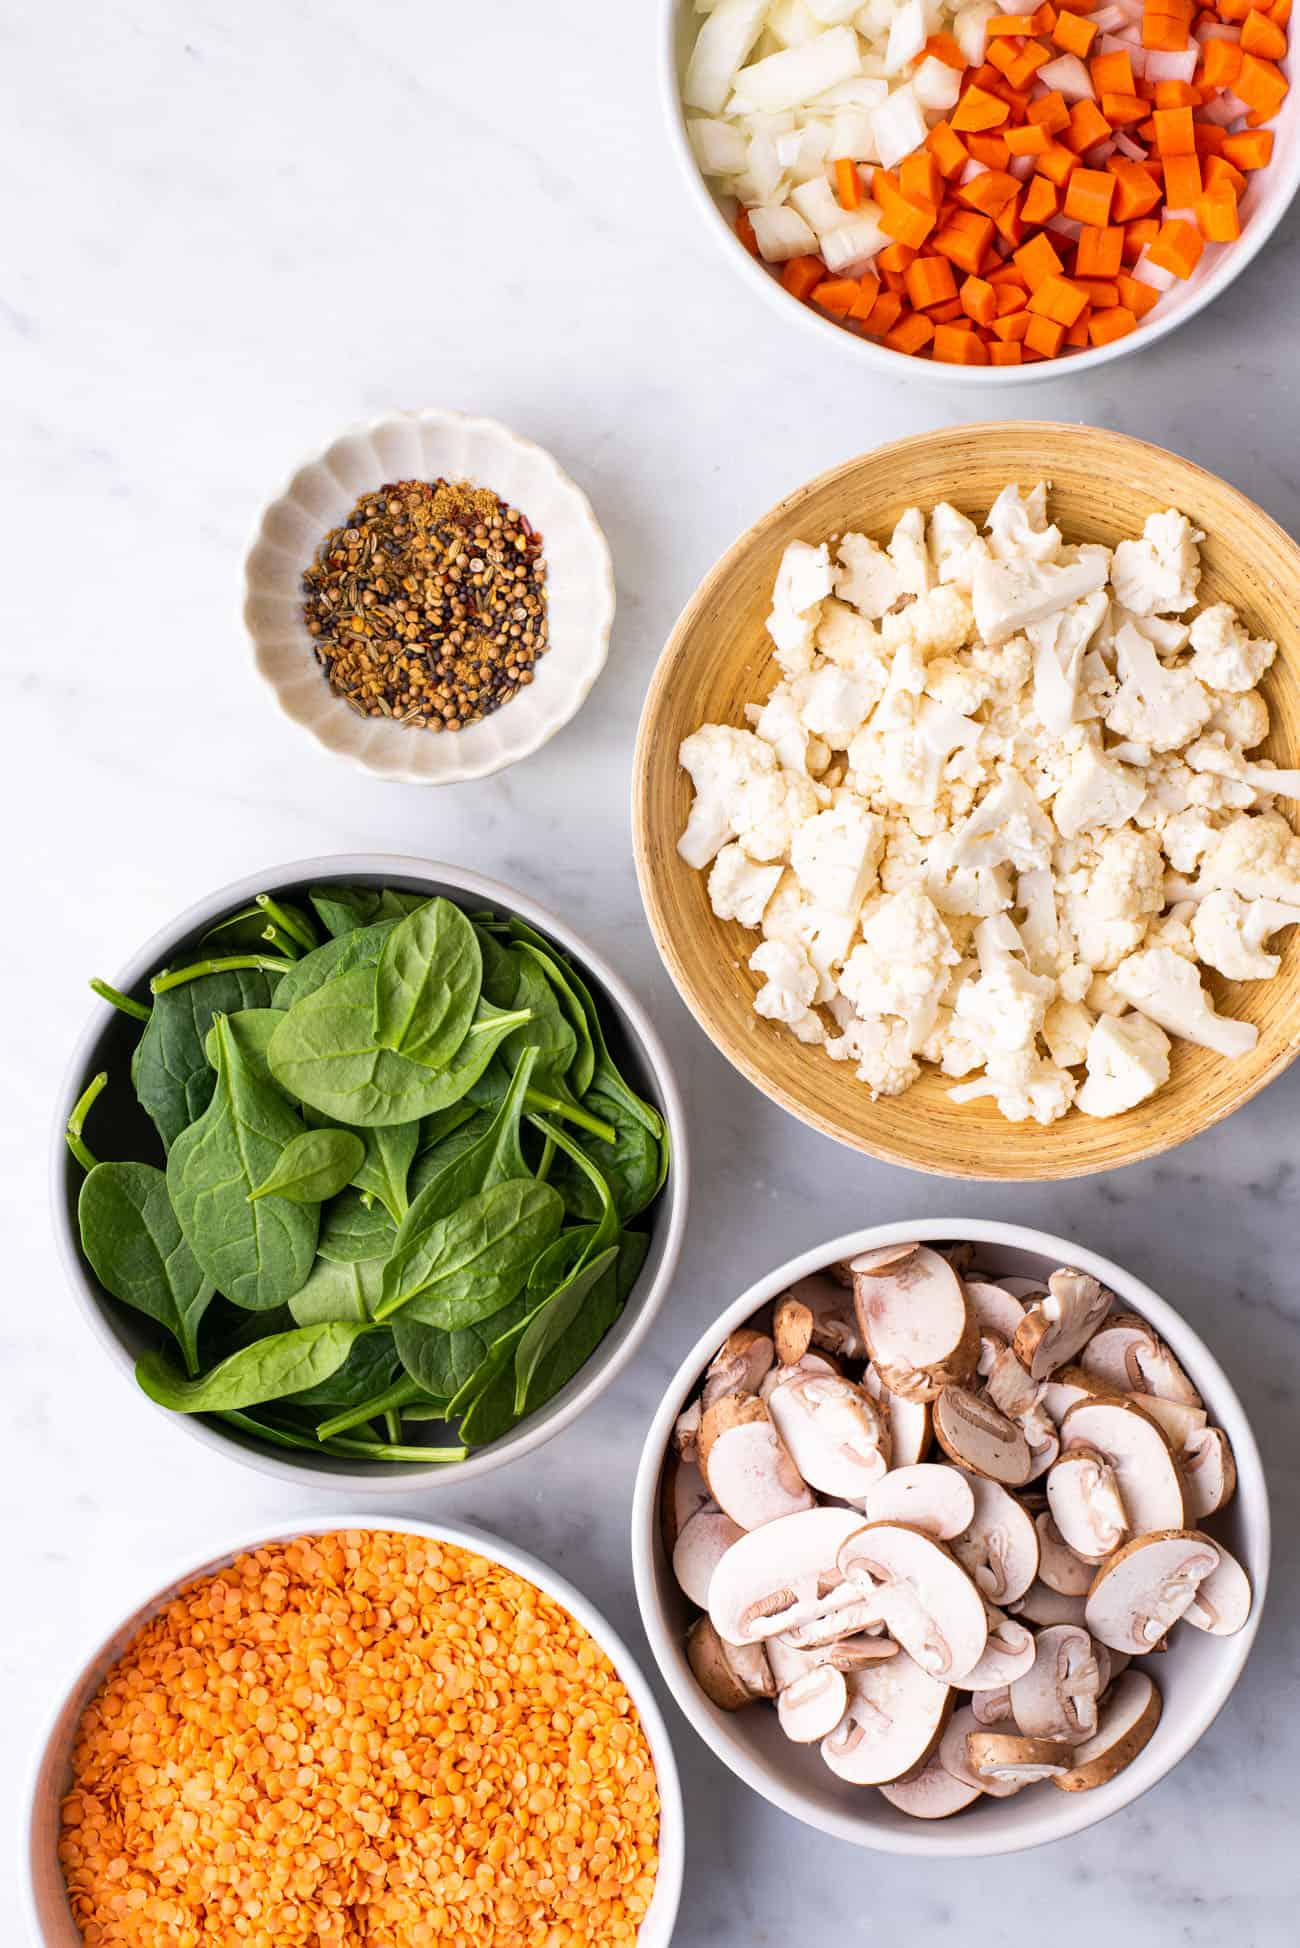 Ingredients gathered to make red lentil dal: onion, carrot, spices, cauliflower, spinach, mushrooms, and lentils